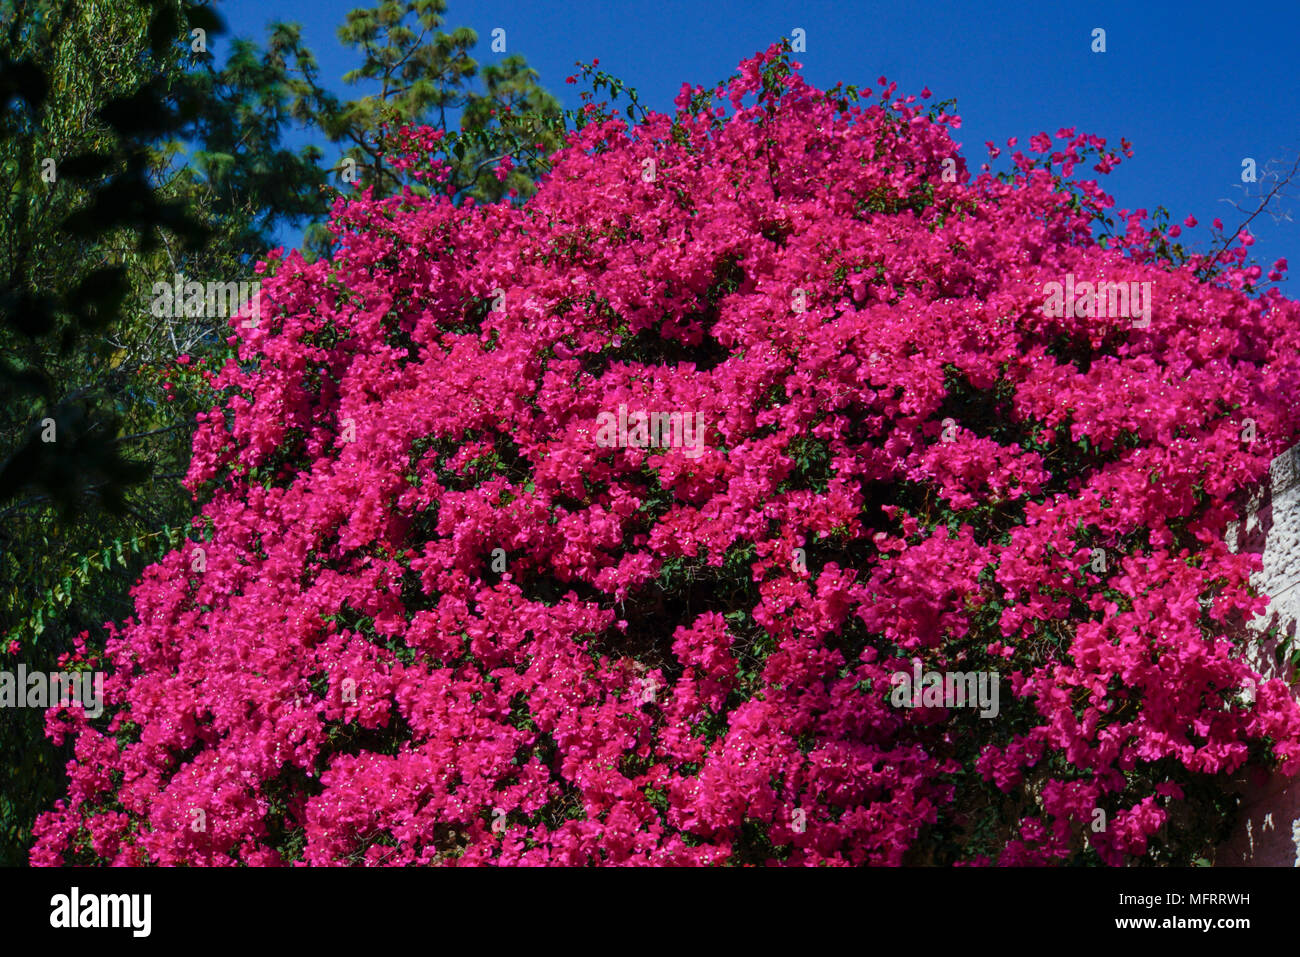 Bougainvillea bush stock photos bougainvillea bush stock images flaming red flowers of a large bougainvillea bush stock image mightylinksfo